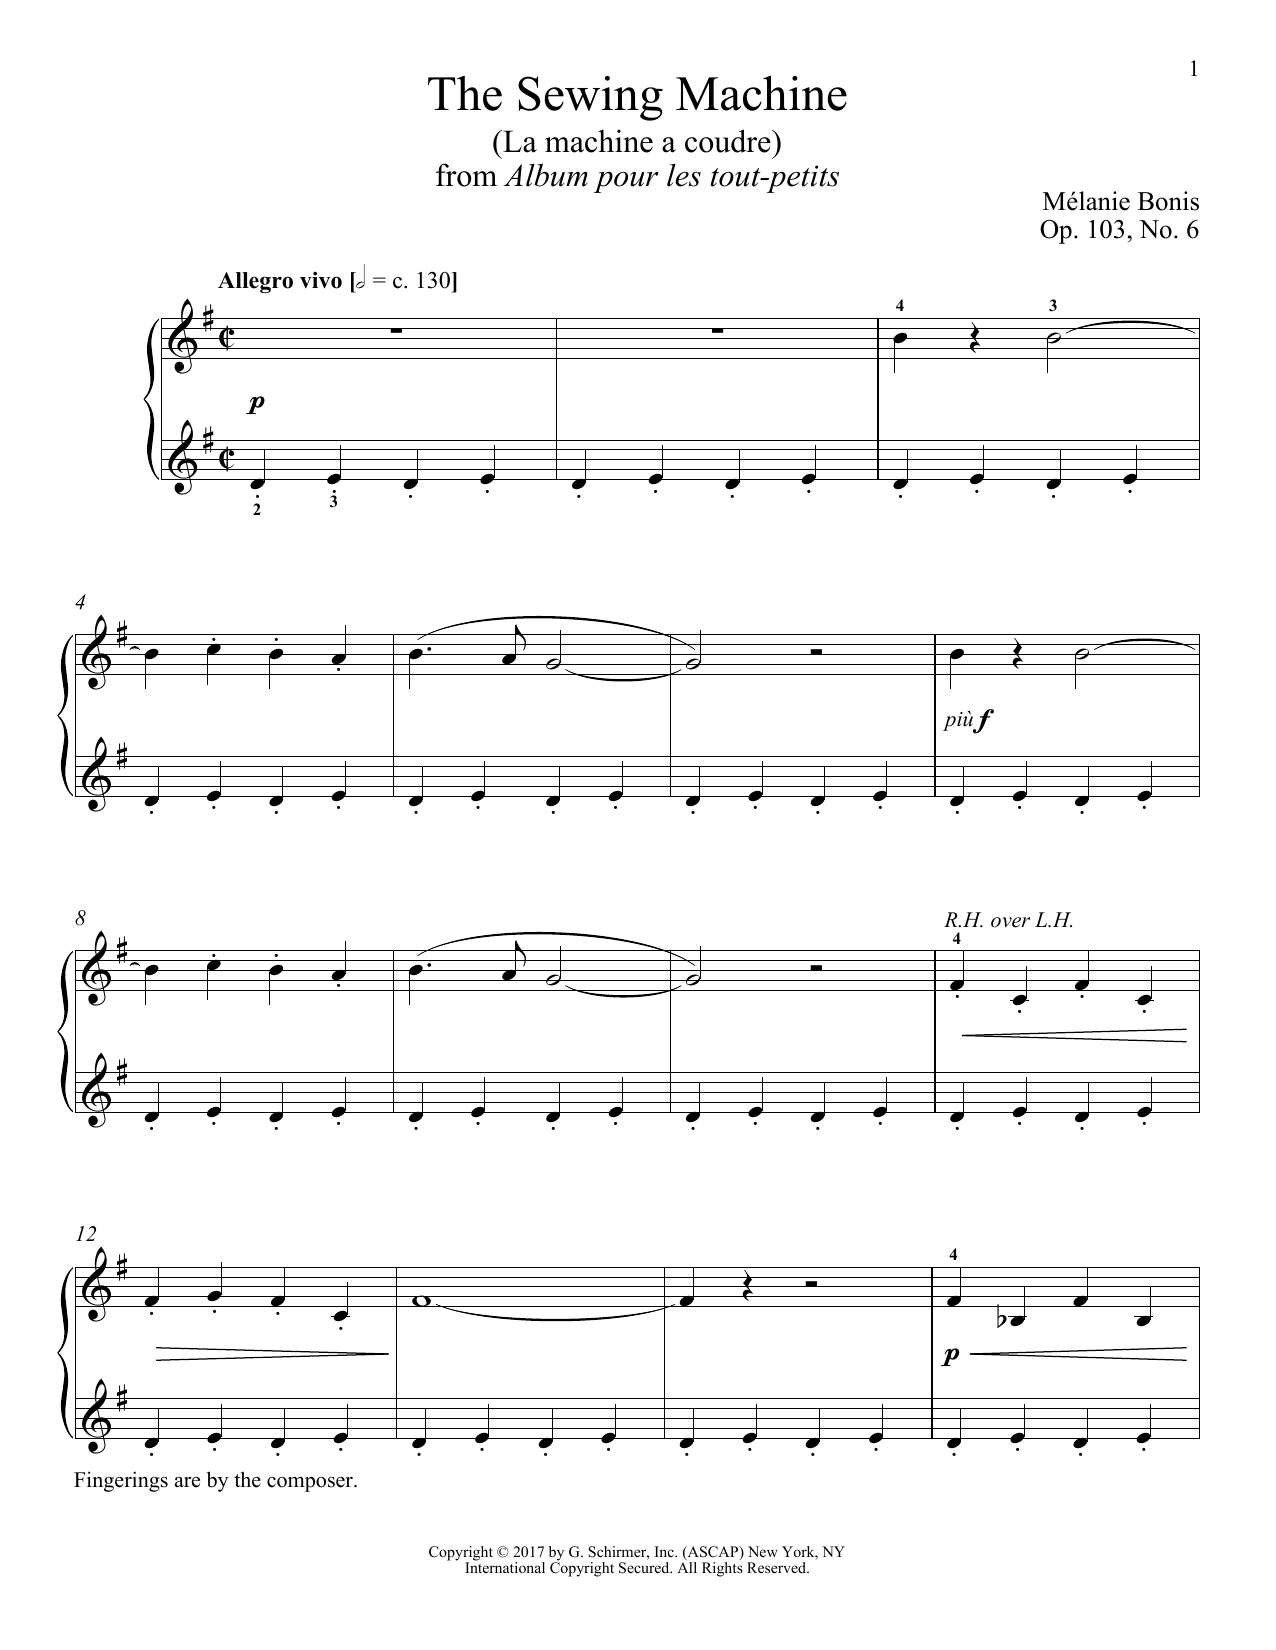 Melanie Bonis The Sewing Machine (La machine a courde) sheet music notes and chords. Download Printable PDF.